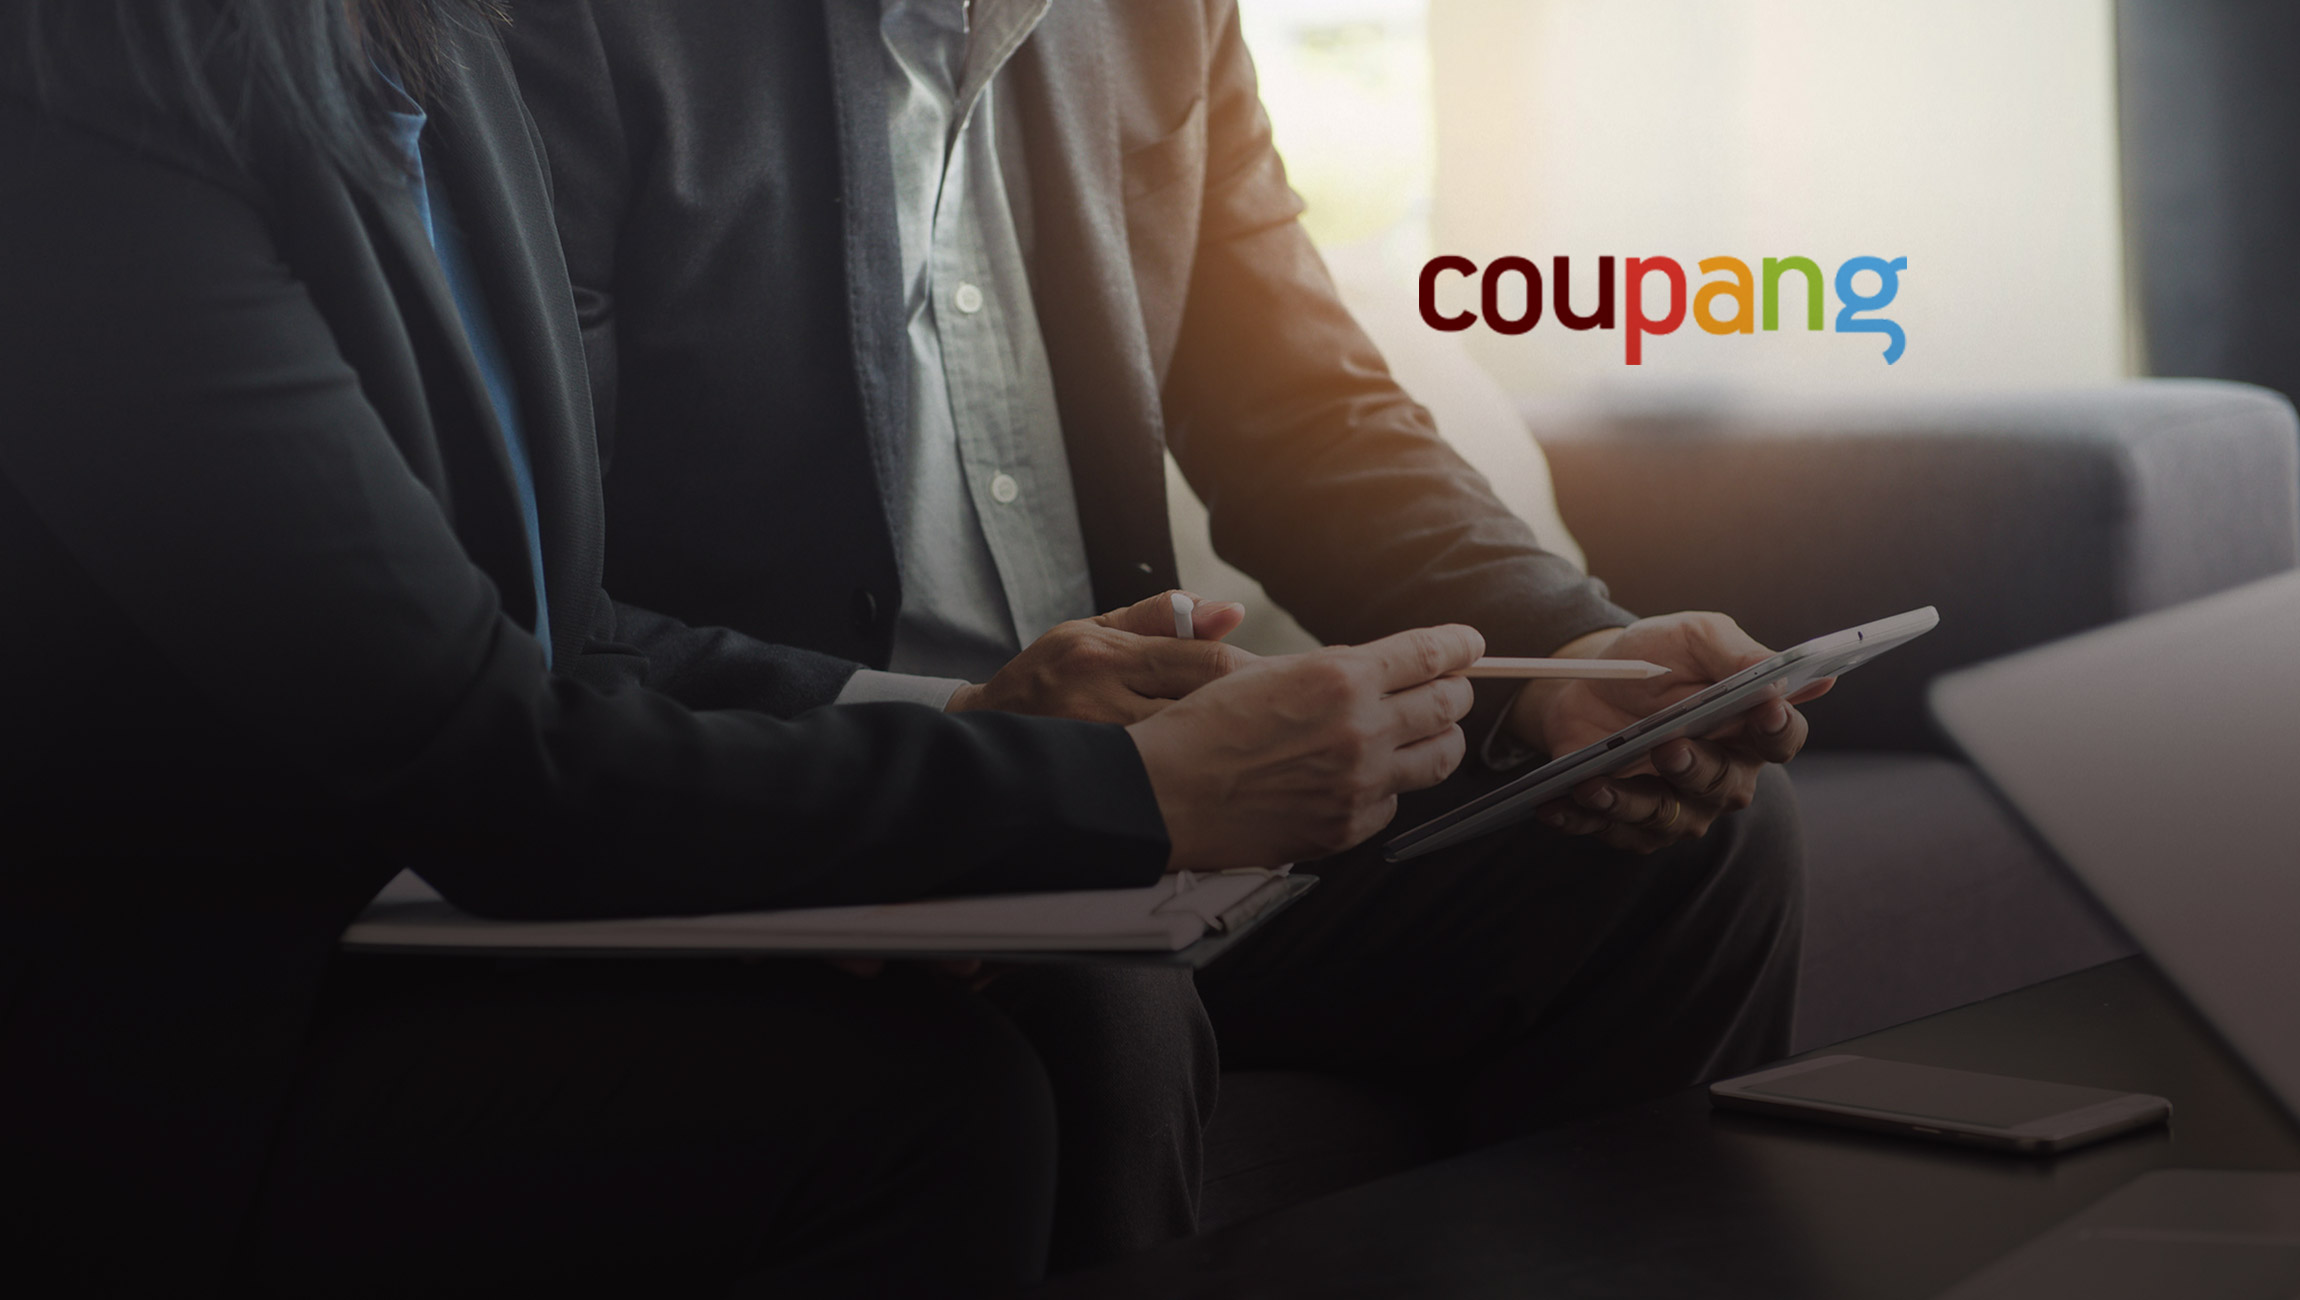 Coupang Appoints Kim Ki-ryung as VP of Company's HR Center of Excellence